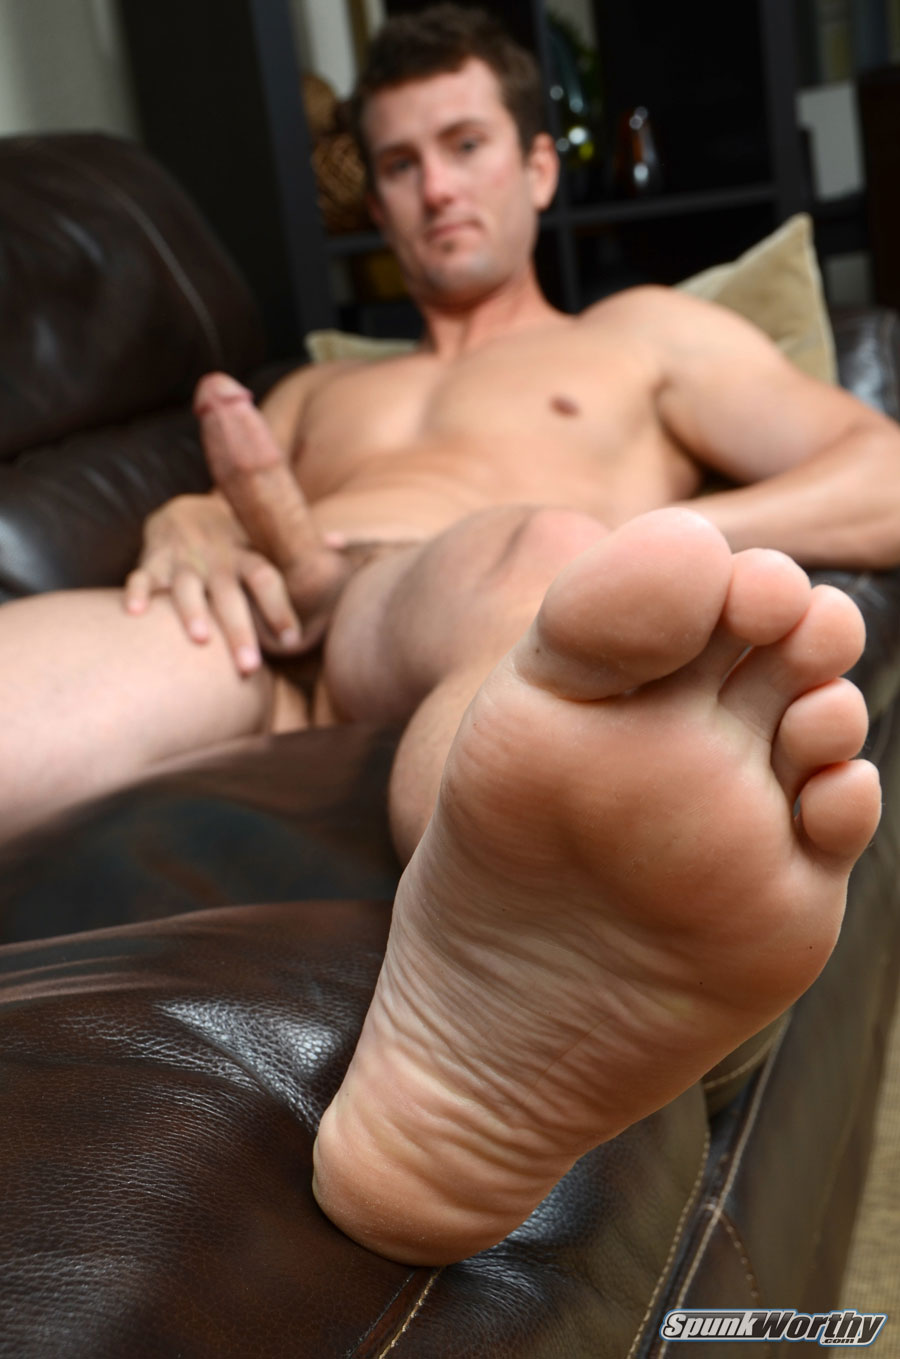 SpunkWorthy Tommy Straight Guy With Big Cock Handjob Amateur Gay Porn 13 Amateur Straight Surfer Gets His First Handjob From A Guy